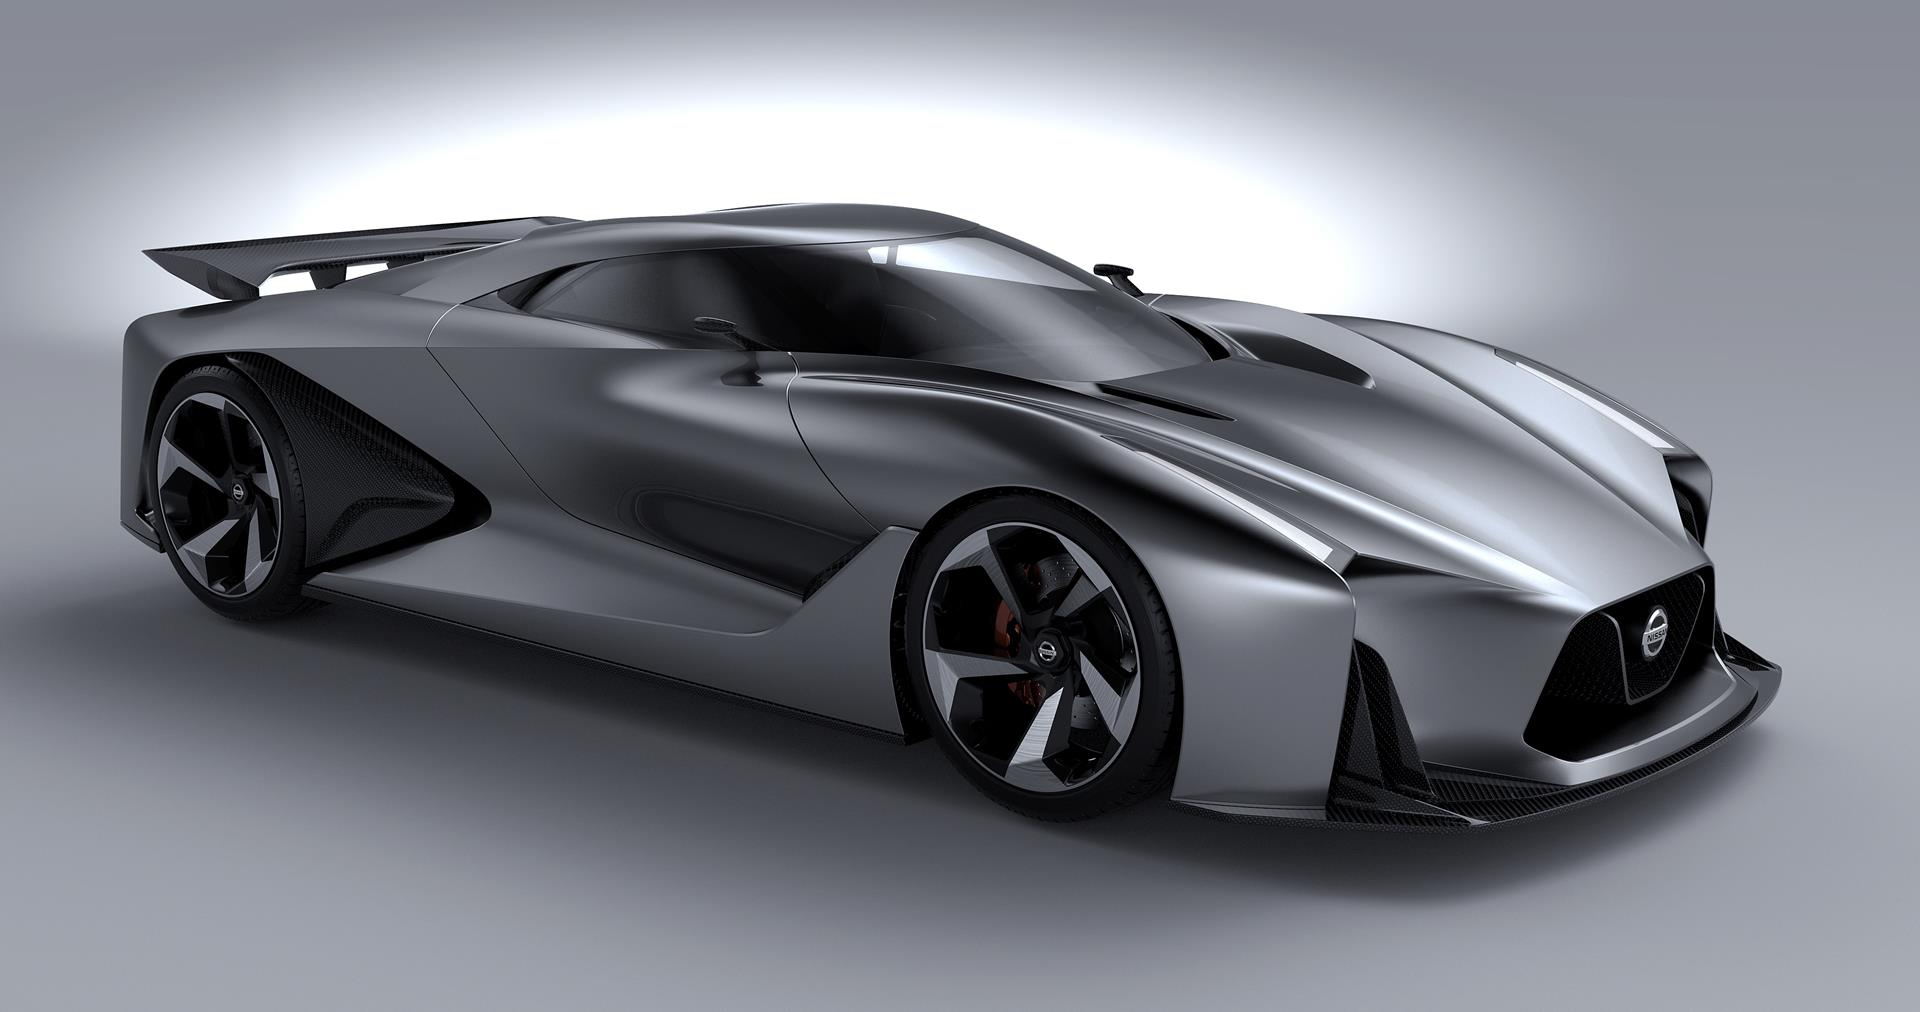 2014 nissan 2020 vision gran turismo concept news and information research and pricing 2014 nissan 2020 vision gran turismo